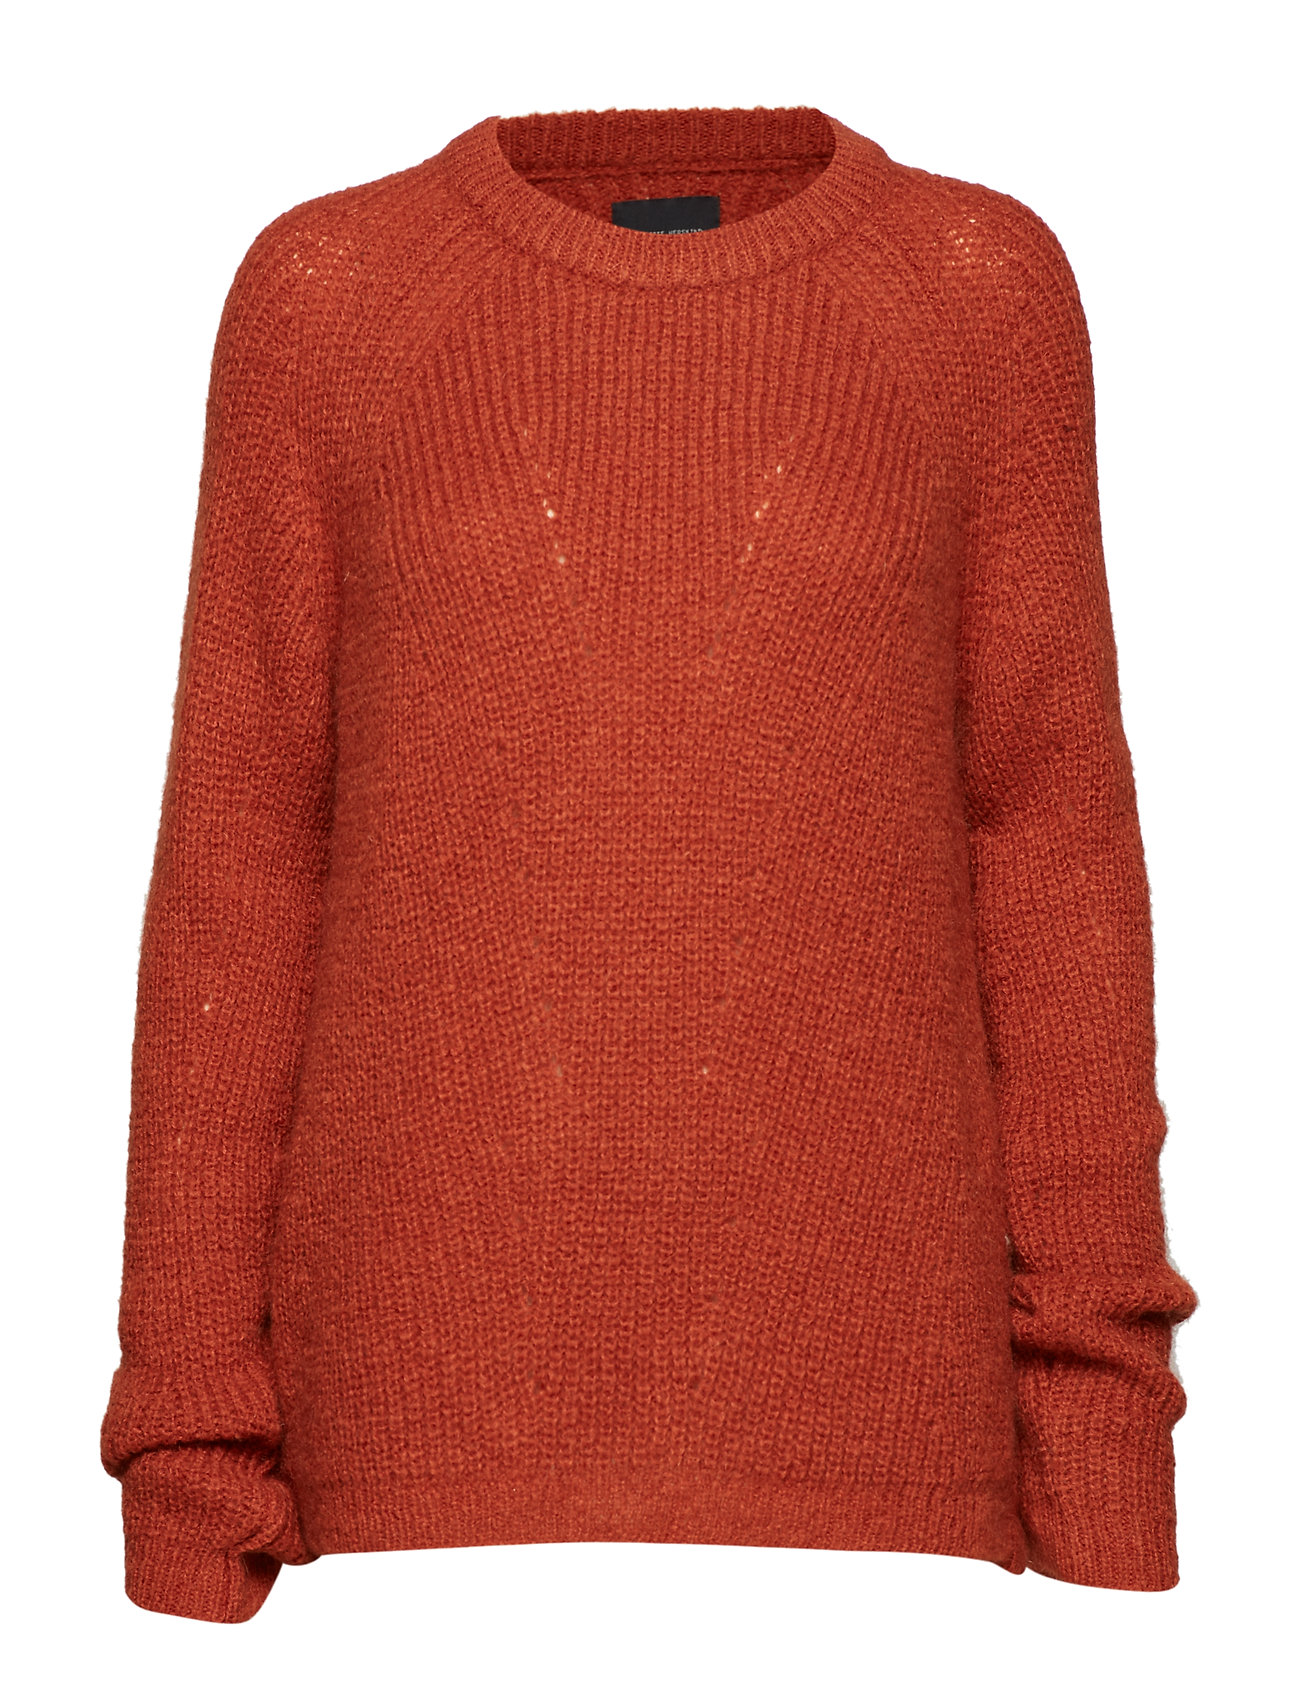 Birgitte Herskind Polly Knit - ORANGE